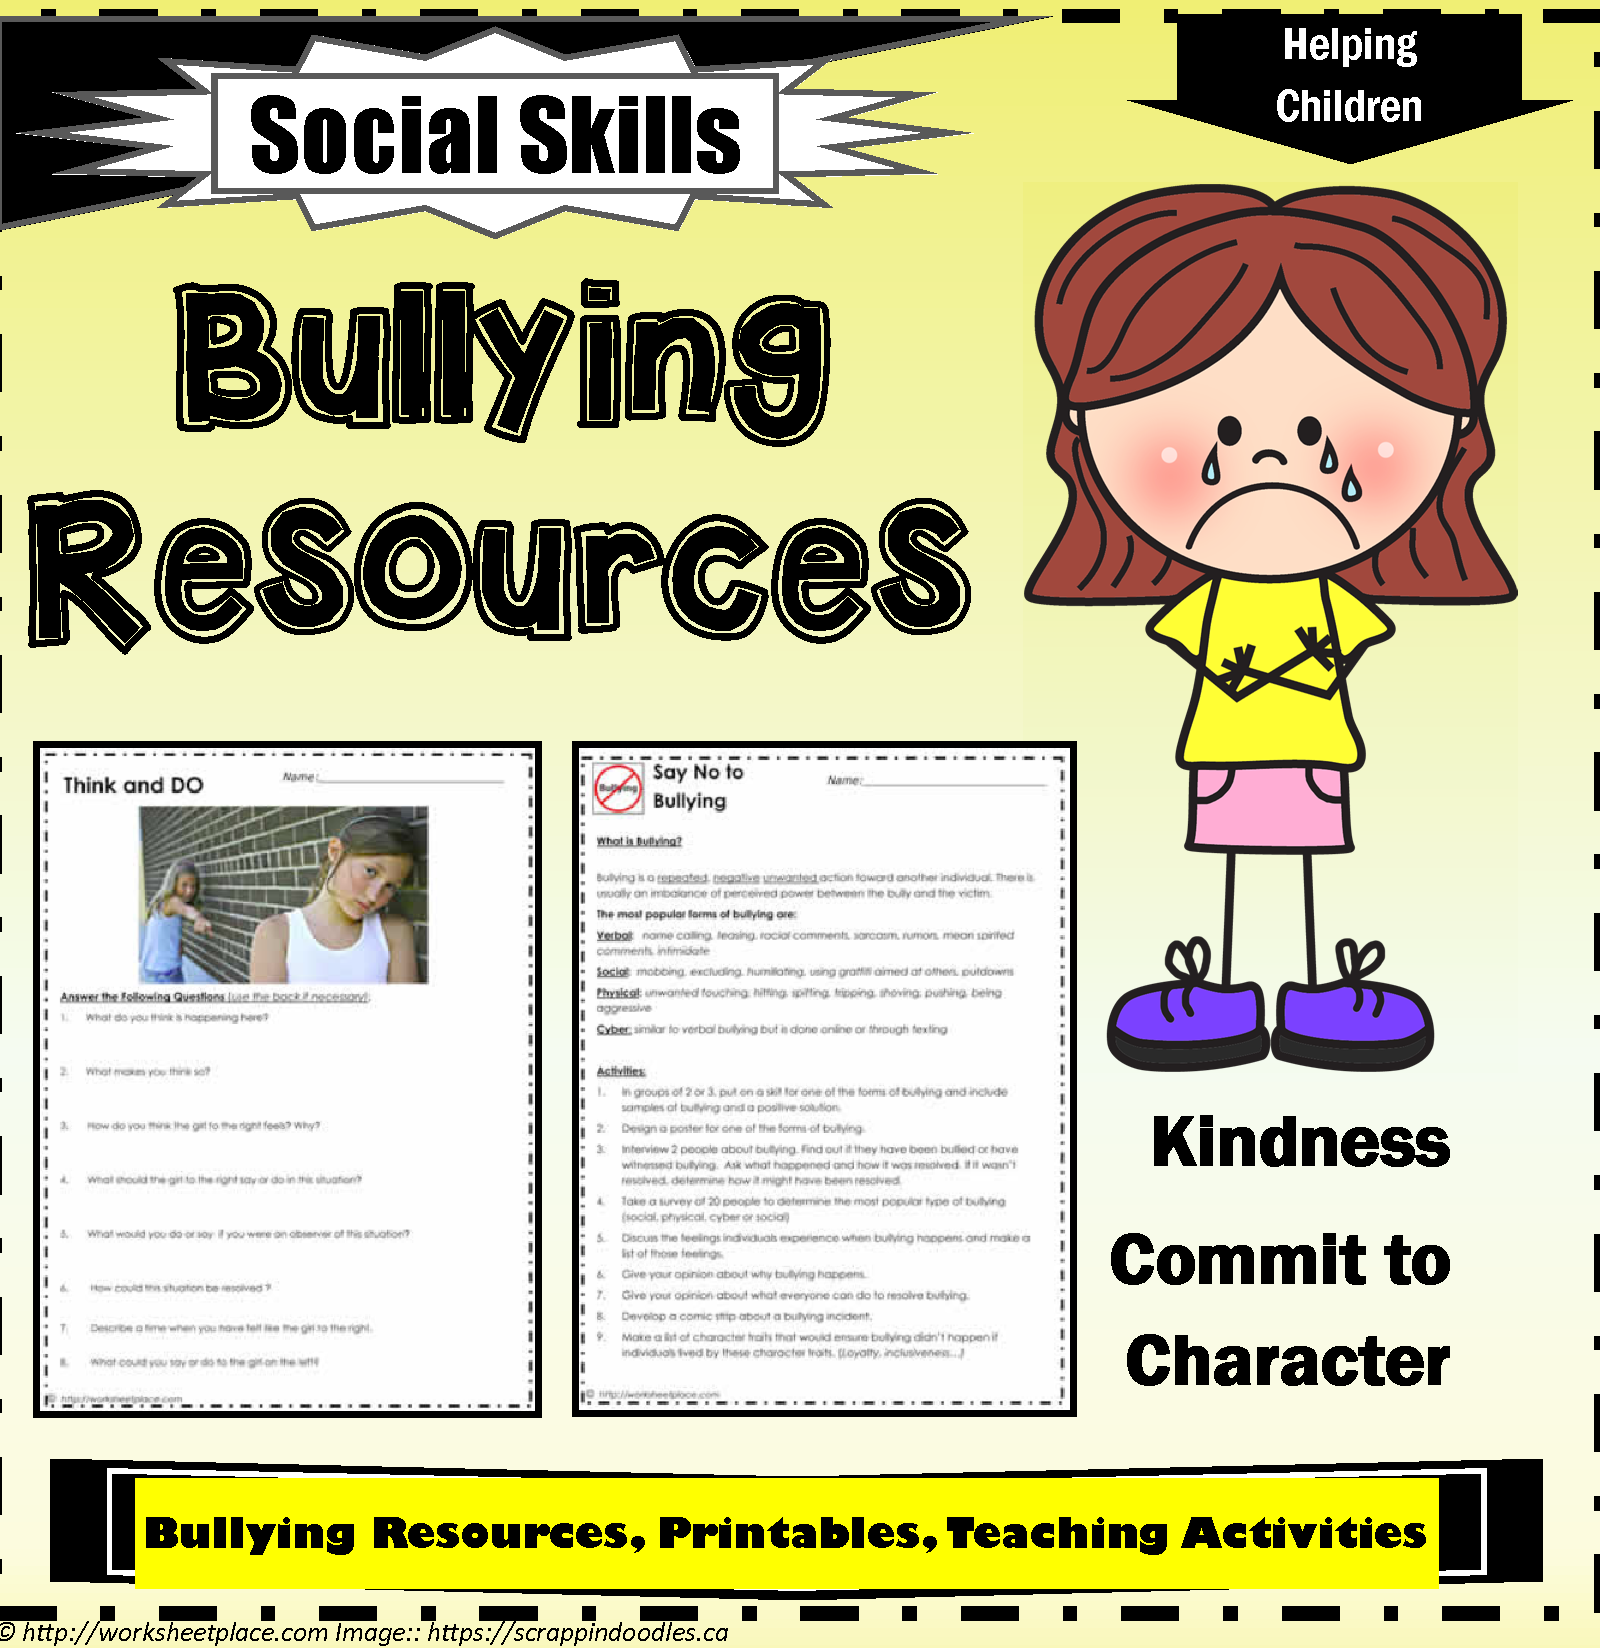 Take A Survey To See Which Type Of Bullying Occurs Most